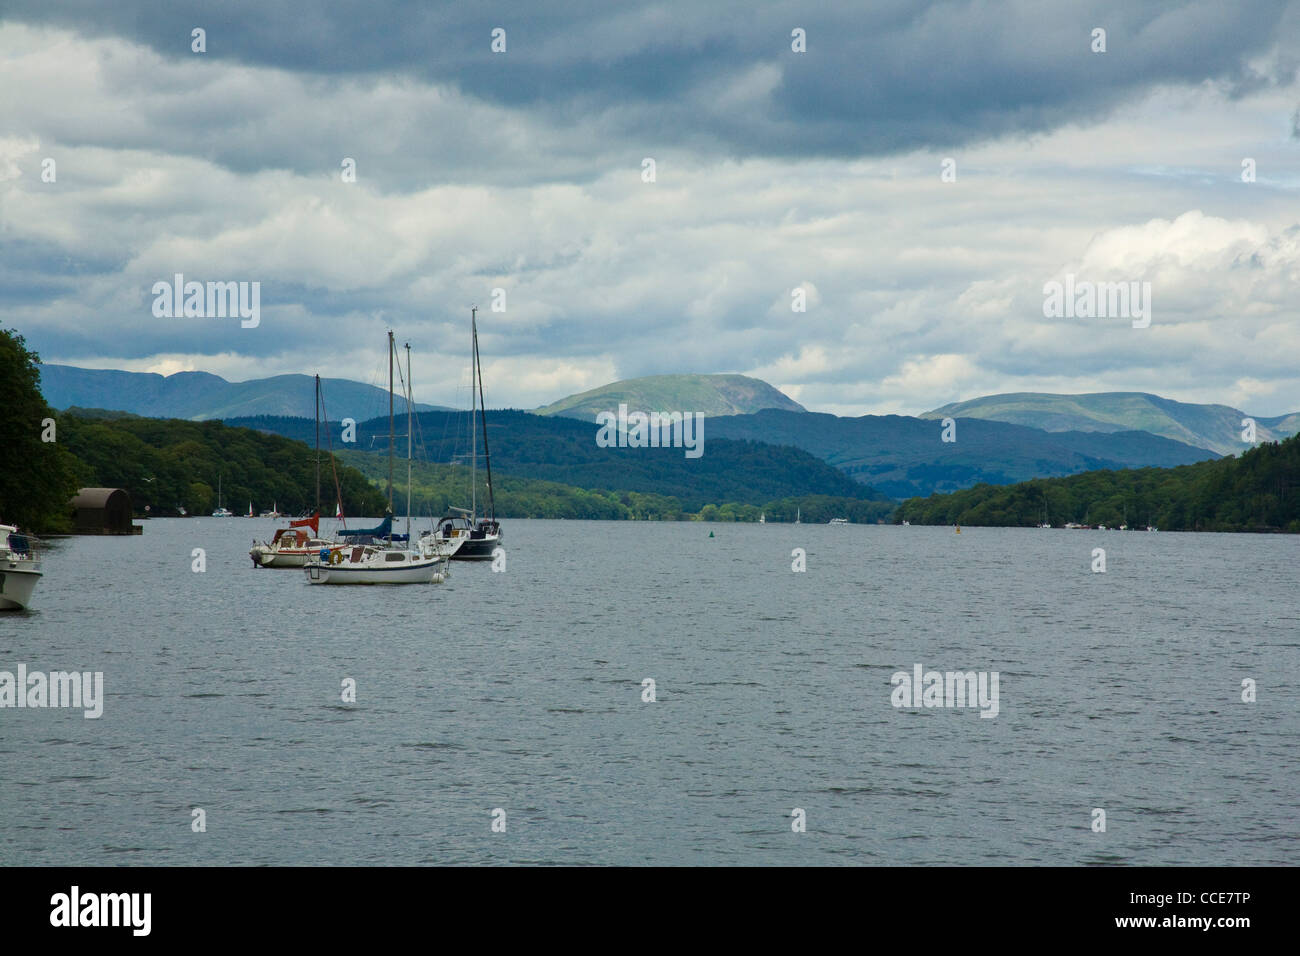 Anchored Sailing Boats under a stormy Sky, Lake Windermere, Cumbria, UK Lake District - Stock Image